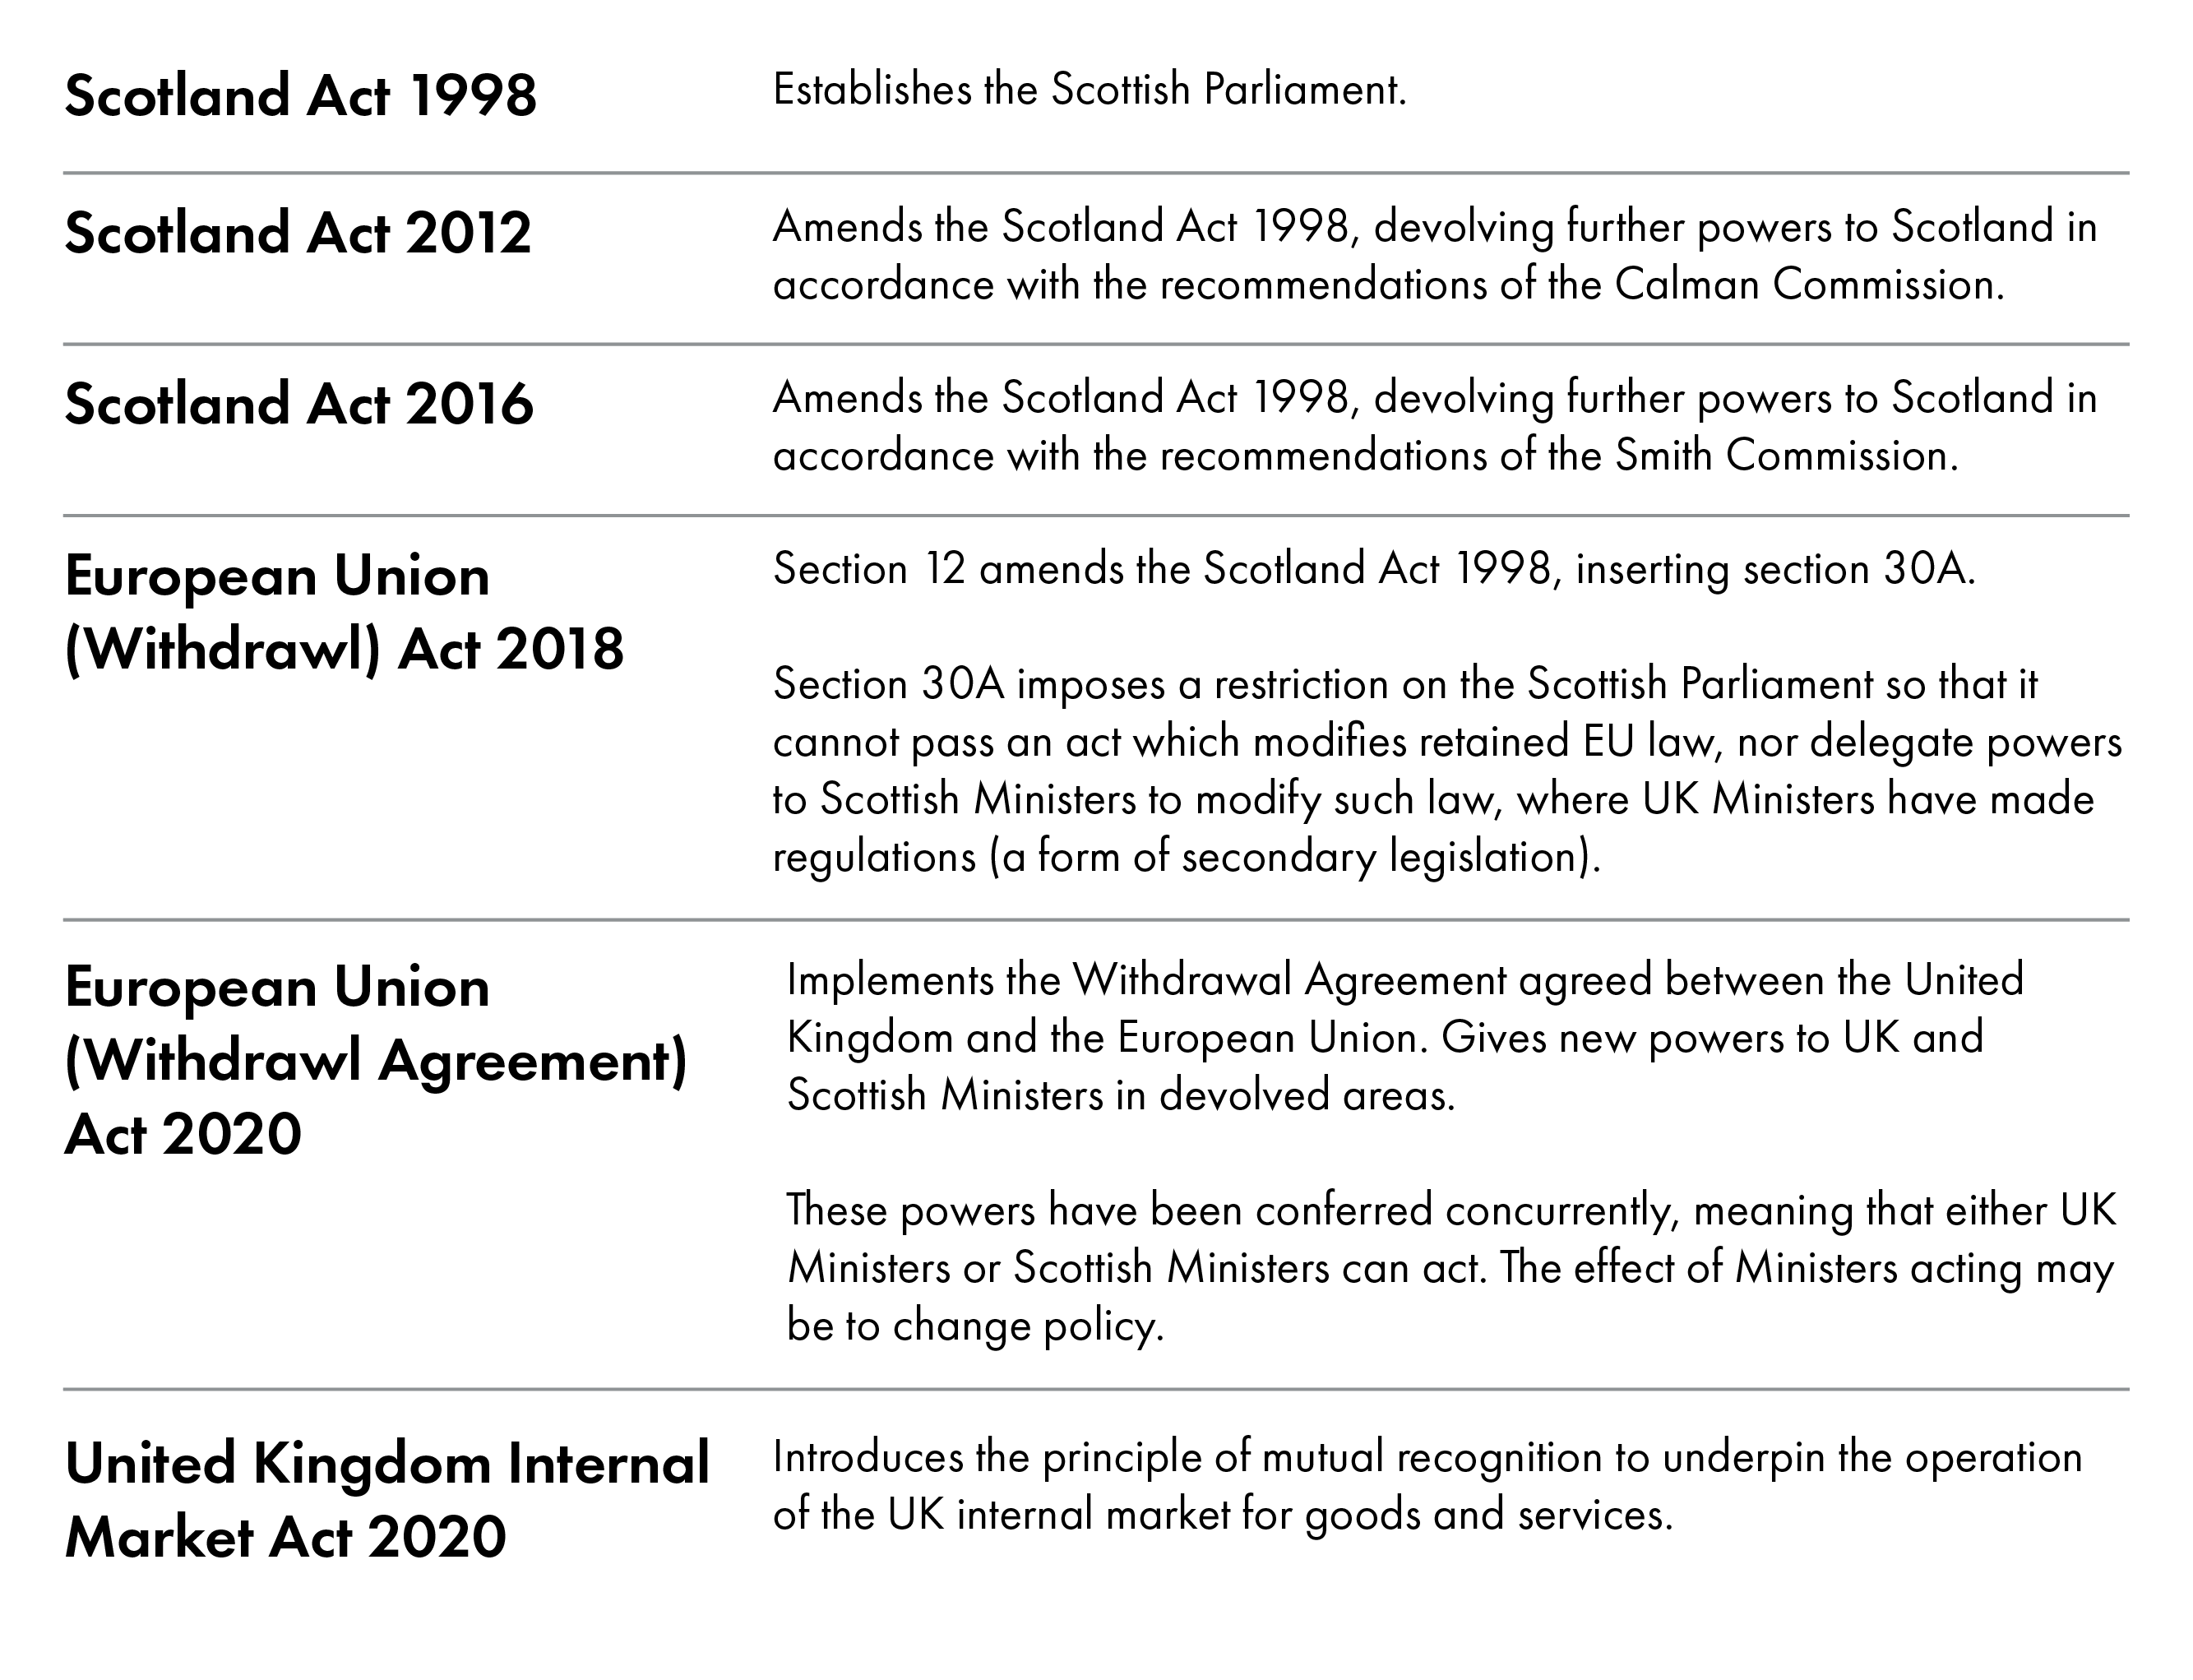 This chart shows the legislation which is central to understanding devoution in Scotland.